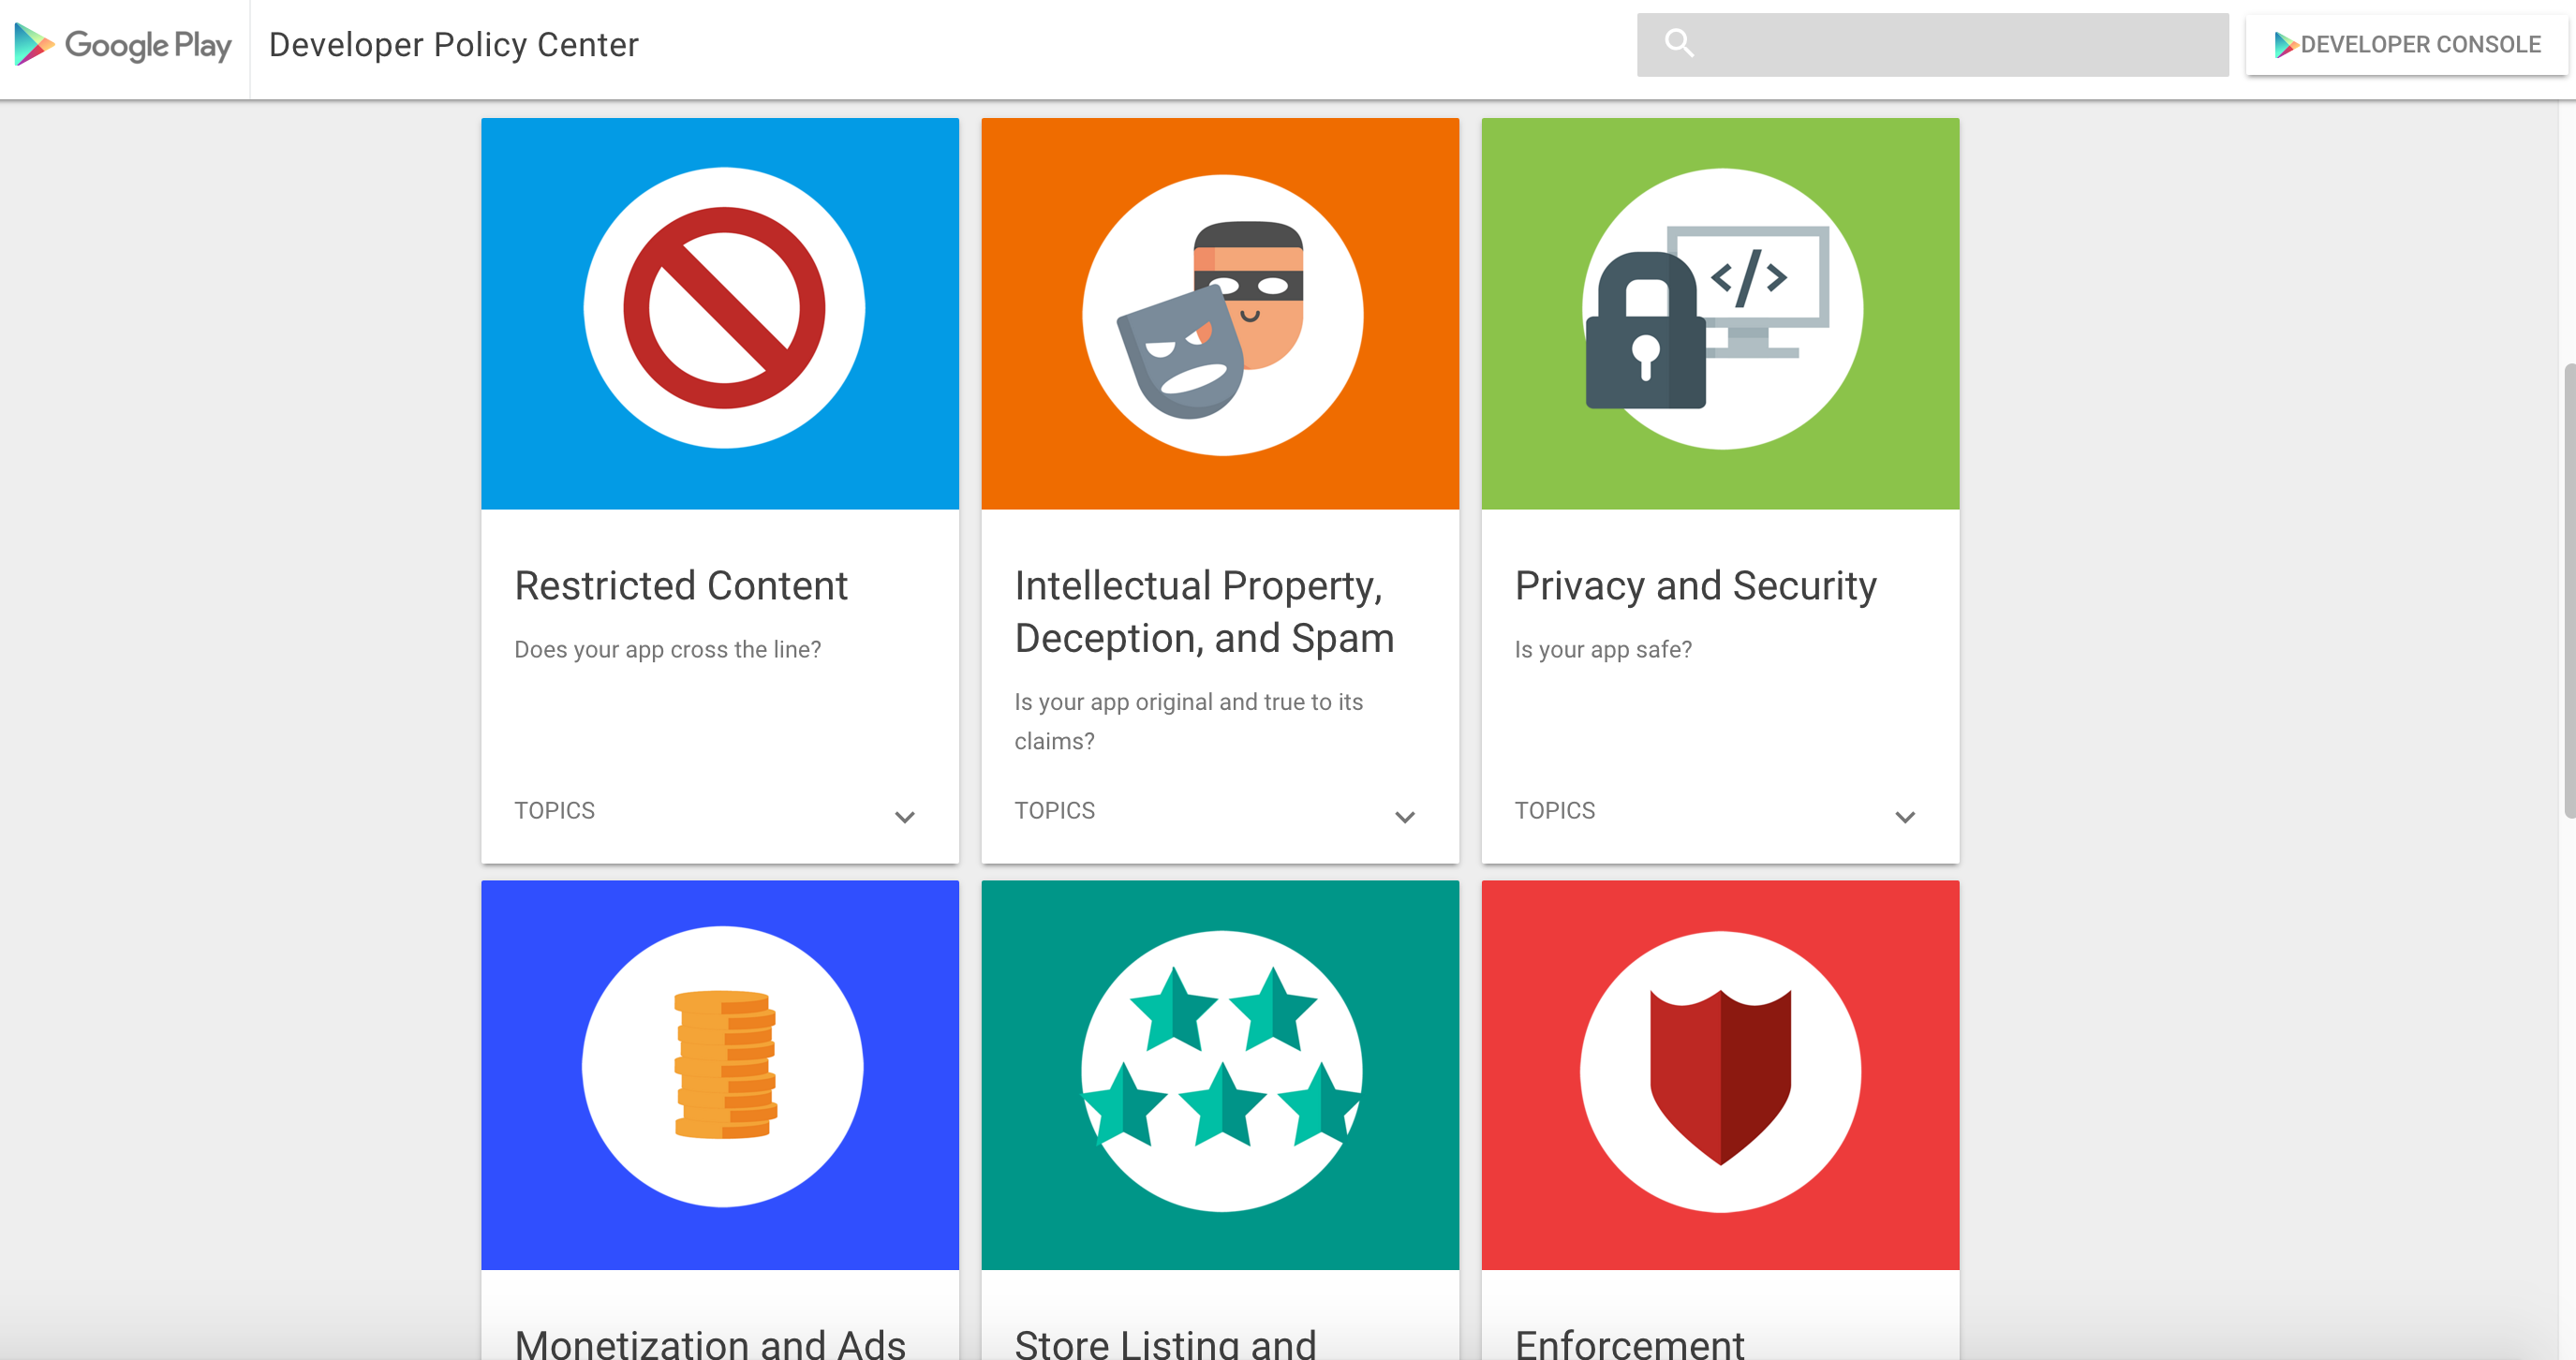 Google gives the Play Developer Program Policy Center a